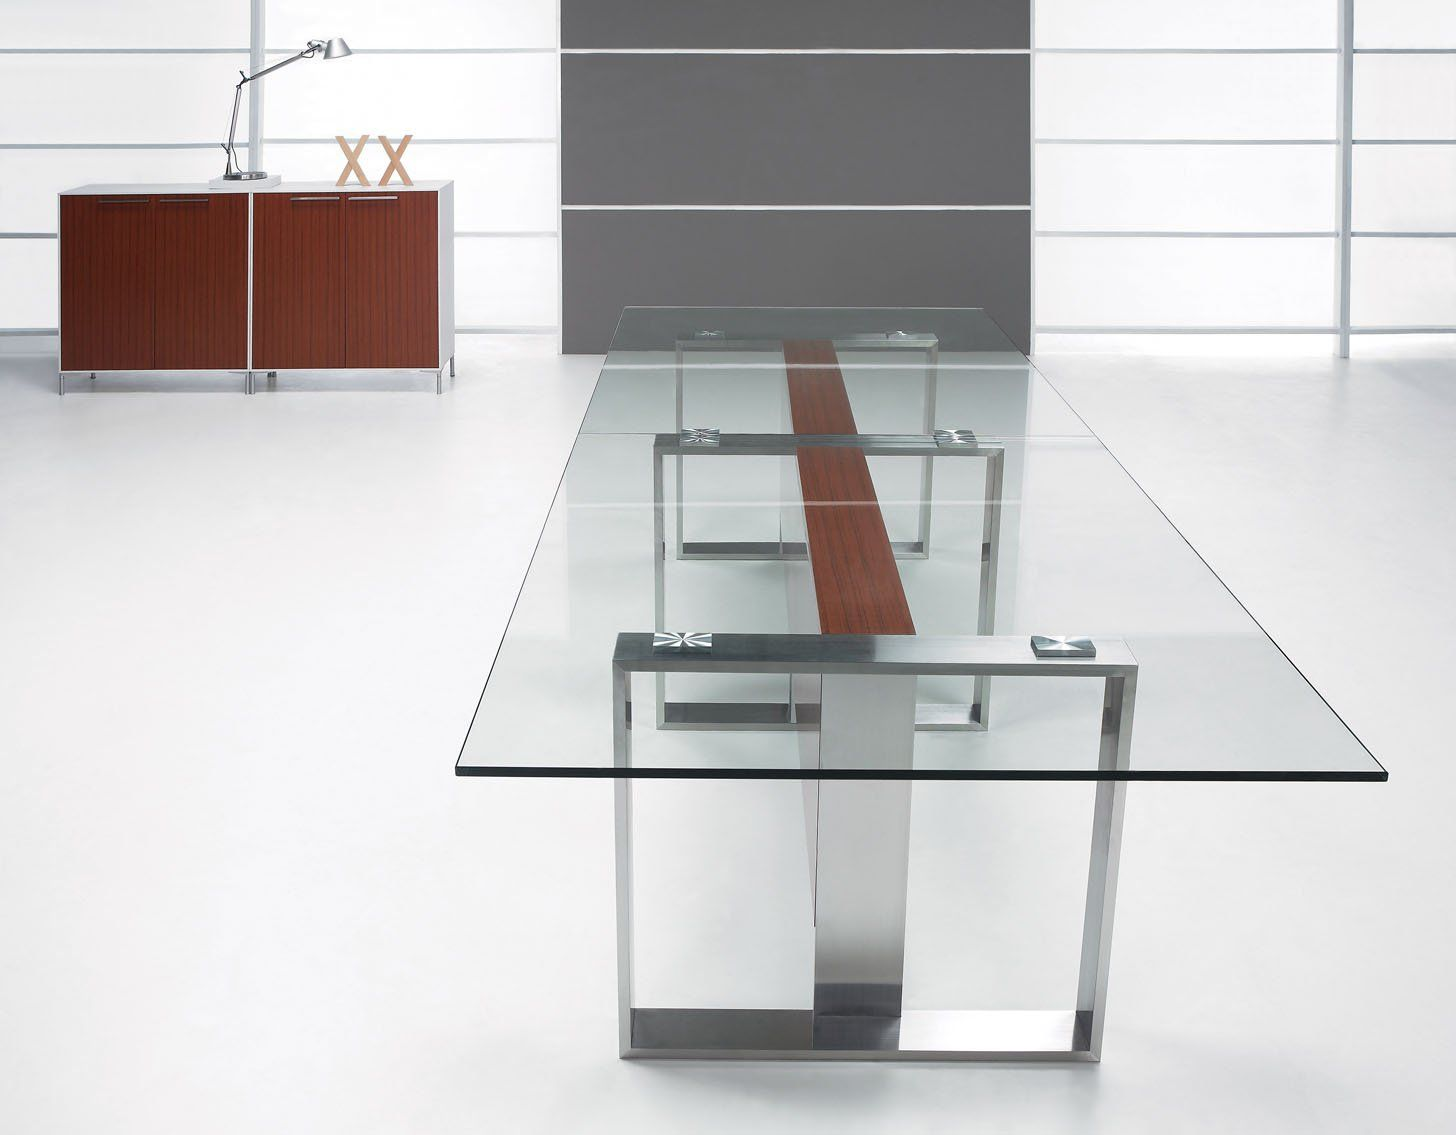 conference table photo detailed about office modern glass  - conference table photo detailed about office modern glass conference